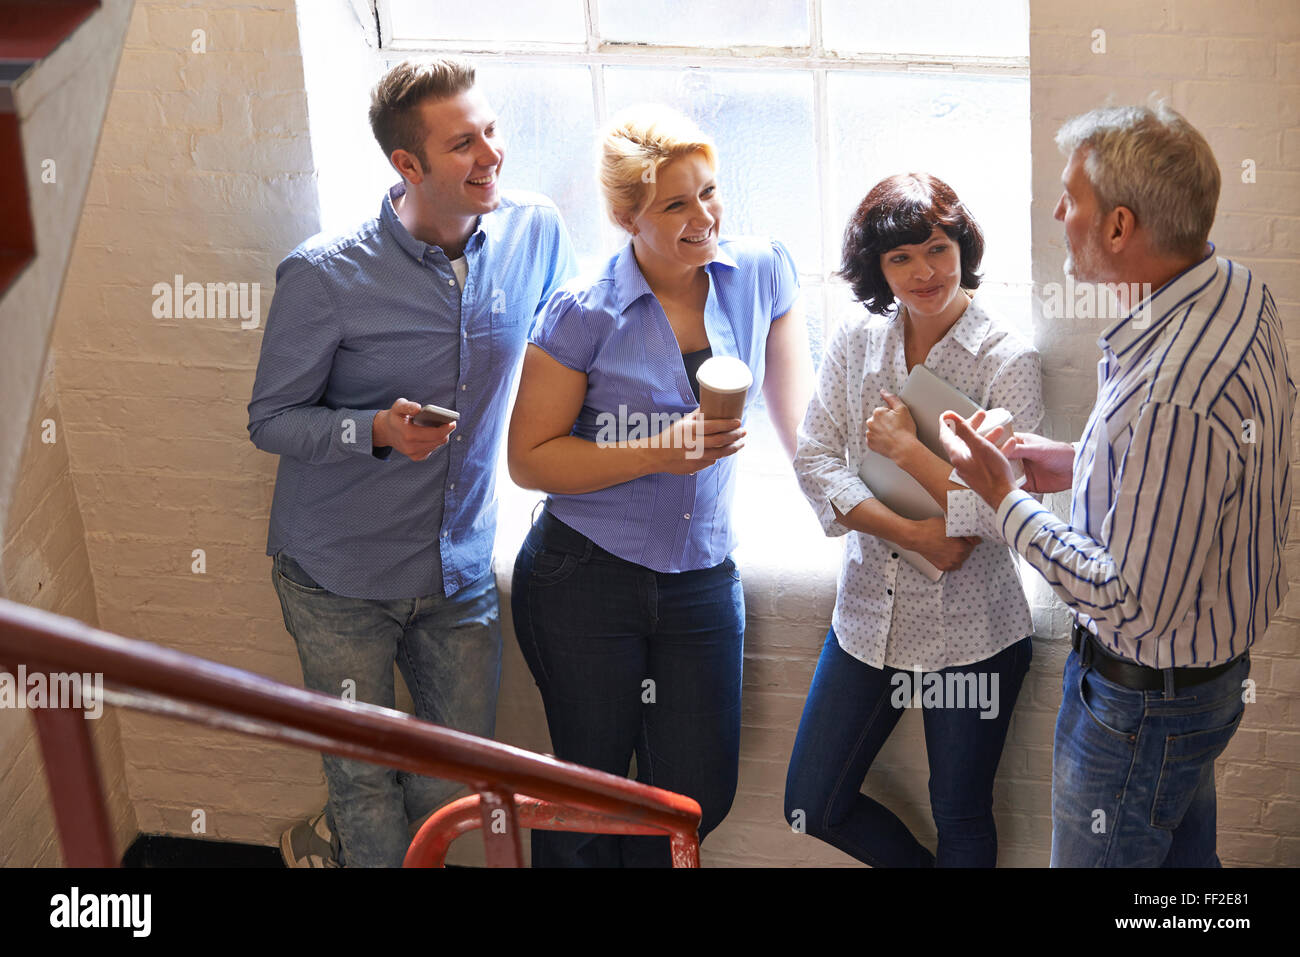 Businesspeople Having Informal Meeting On Office Stairs - Stock Image